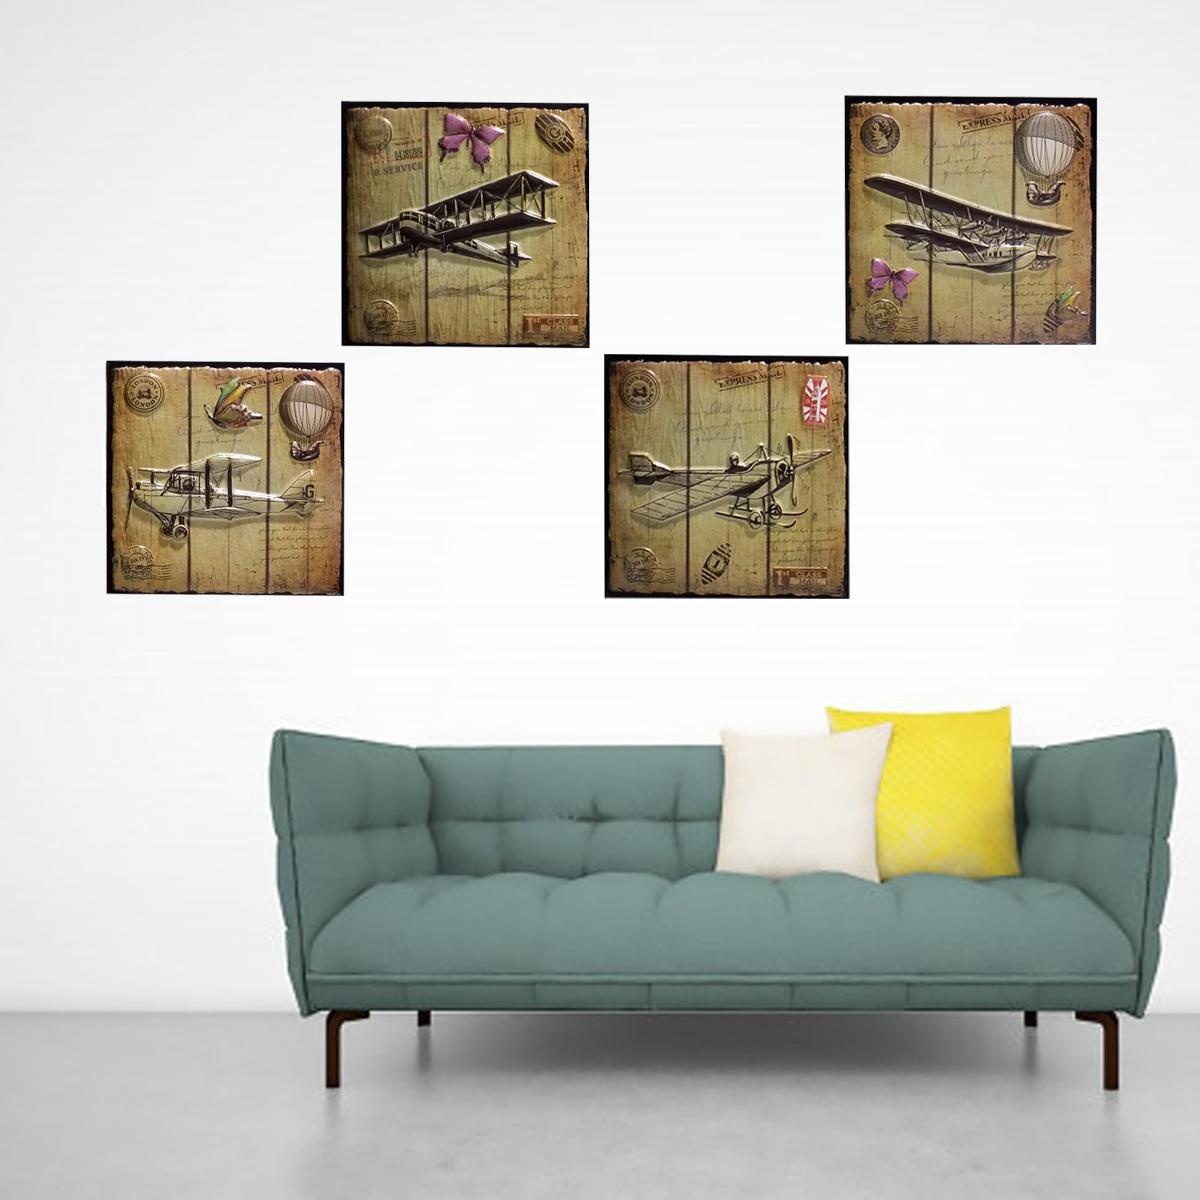 Antique Aircraft Home Room Wall Decor 3D Sticker Creative Art Posters Stickers Decals